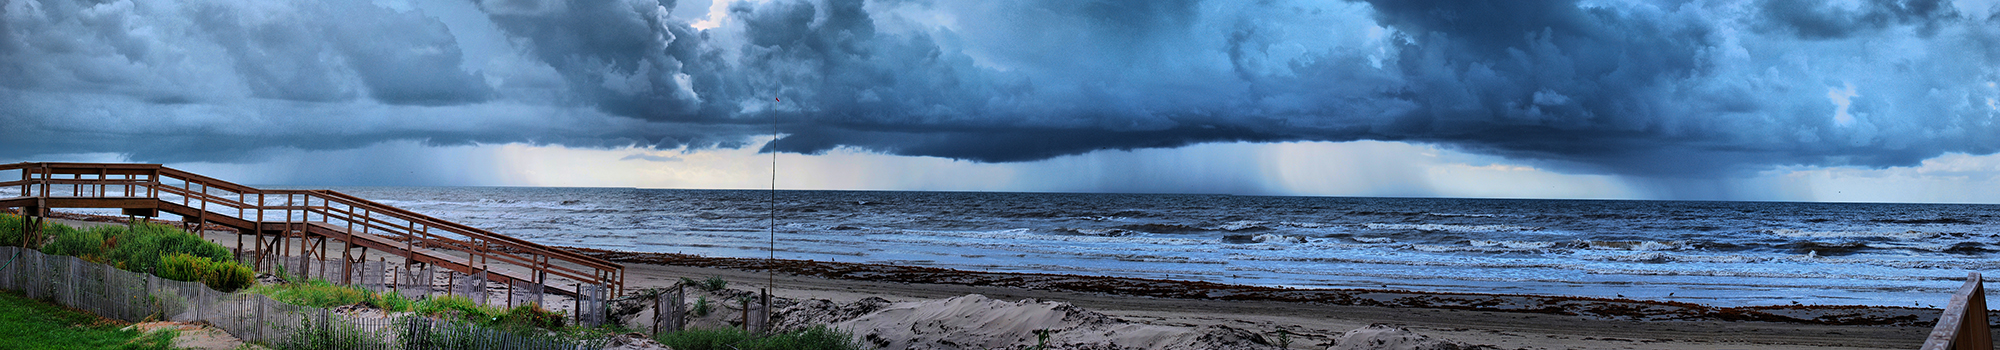 Storm over Gulf